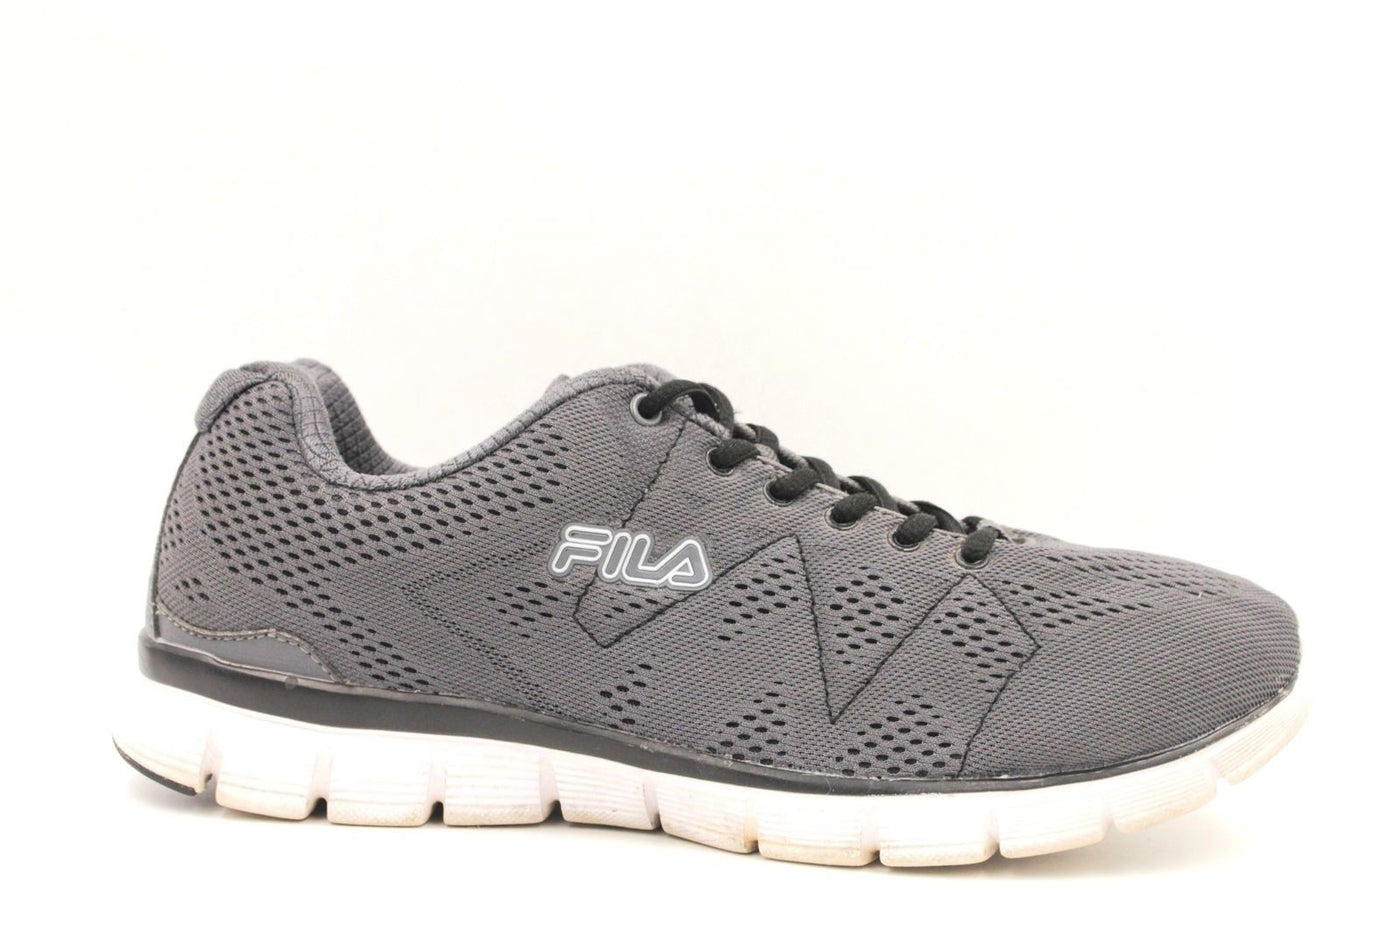 FILA Men's Refractive Memory Foam Athletic Running Shoes